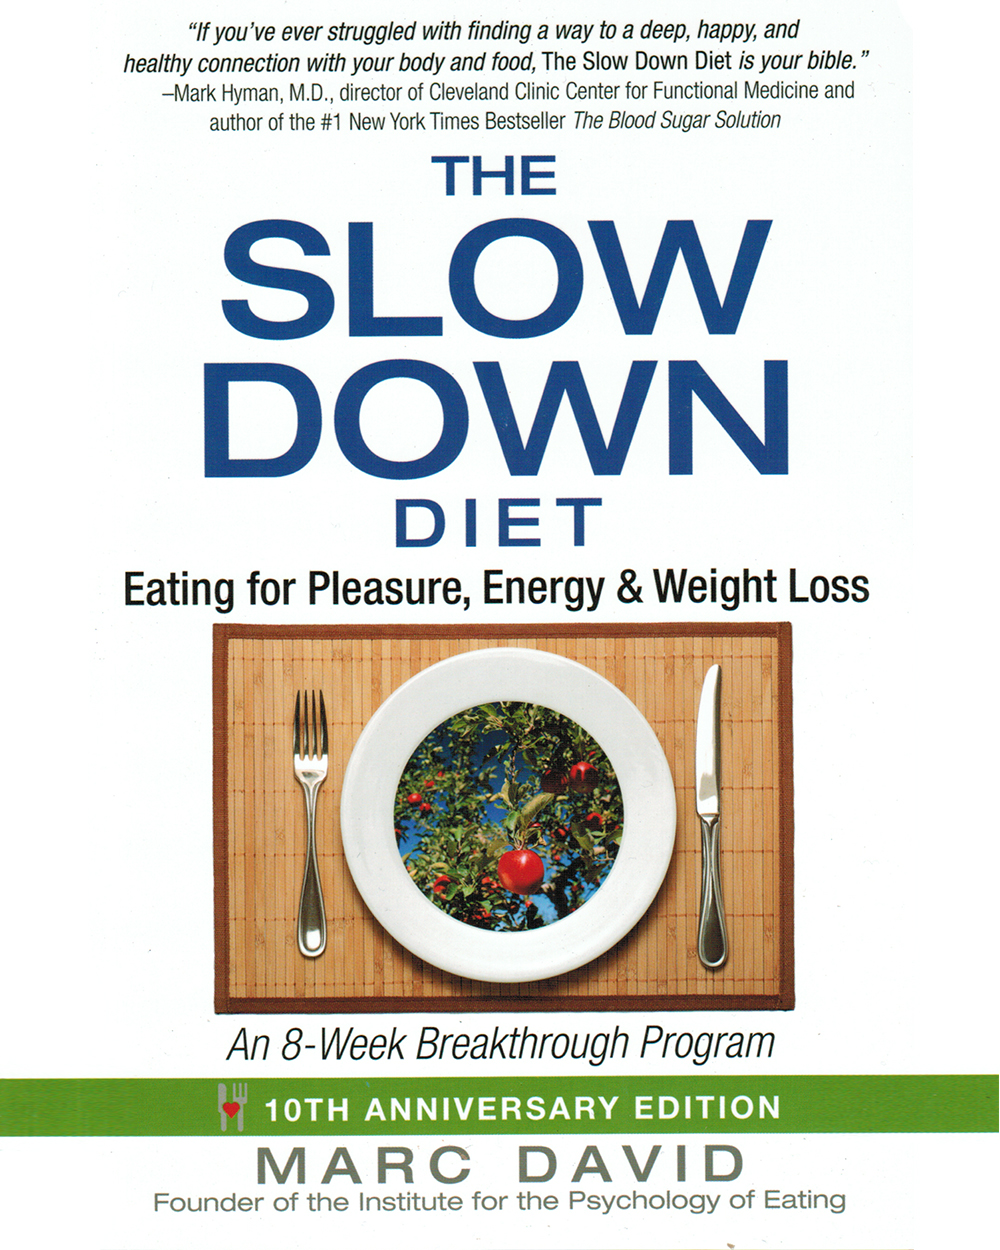 The Slow Down Diet - This really isn't a diet book but is an important read for anyone who has been on the diet train or is struggling with emotional eating or a tumultuous relationship with food. I highgly recommend.